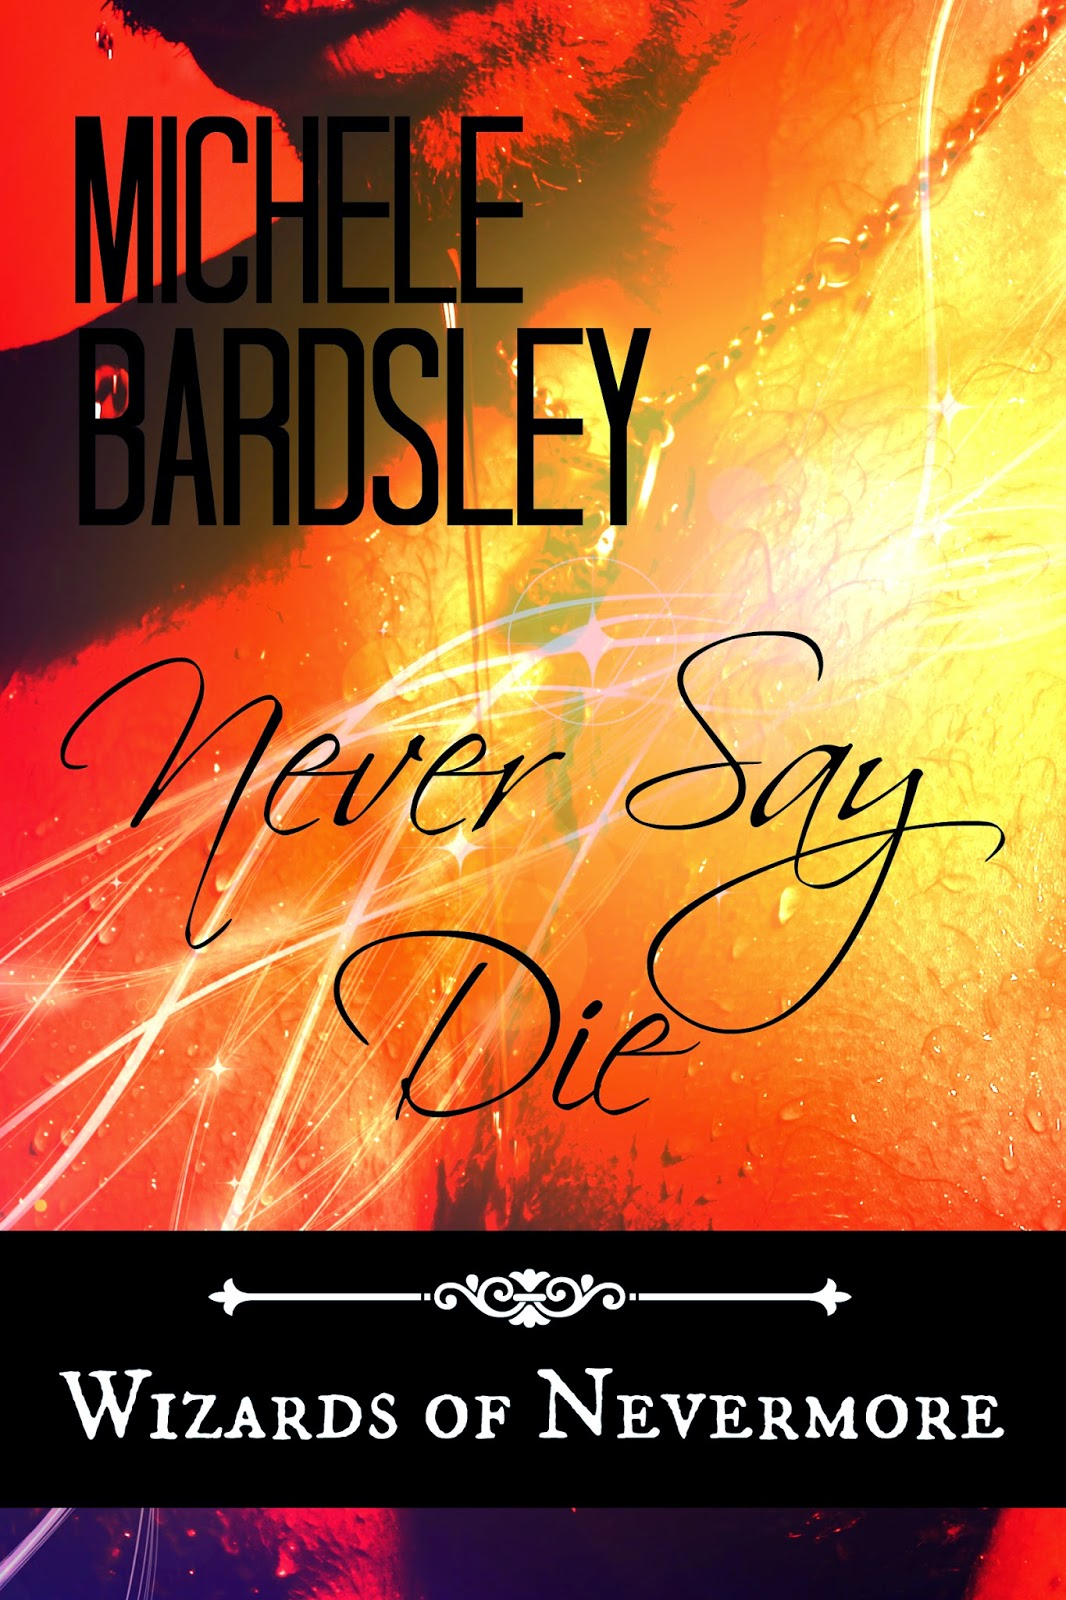 Never Say Die is Book 3 in the Wizards of Nevermore series by Michele Bardsley.